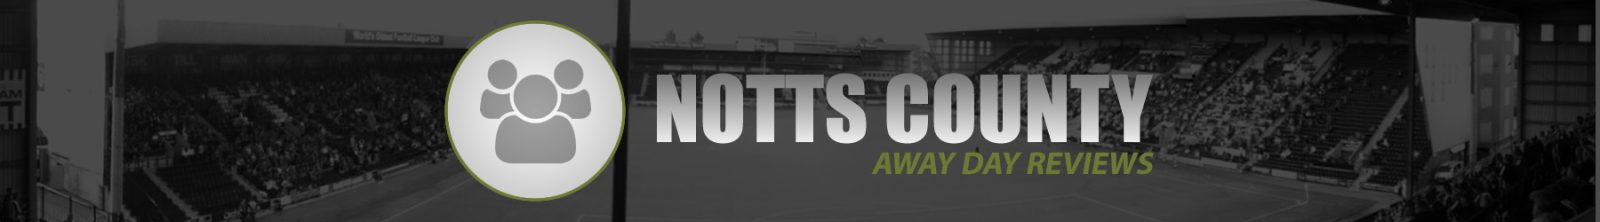 Review Notts County